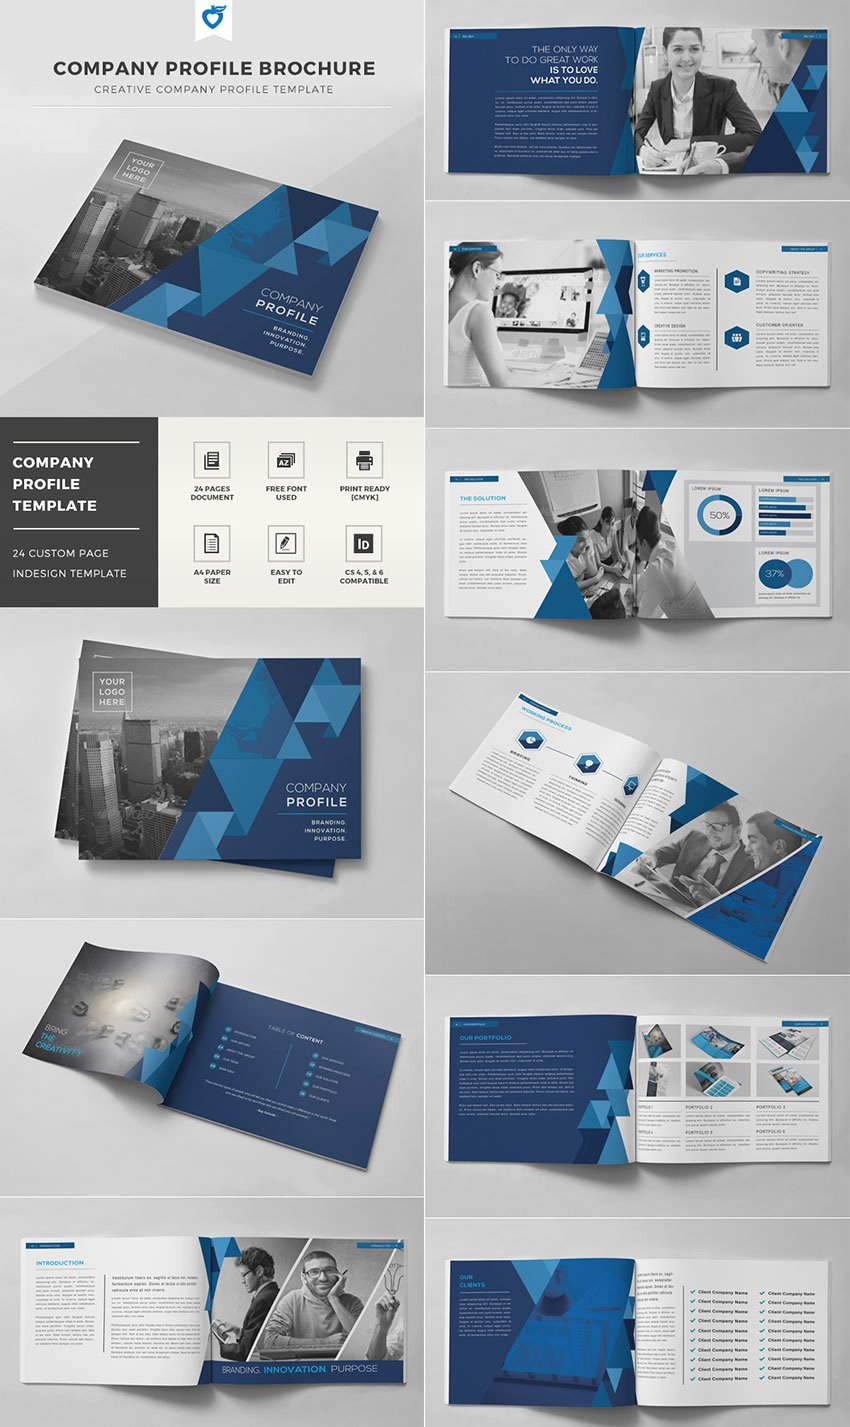 Product Catalogue Template Pdf Lovely 20 Best Indesign Brochure Templates for Creative